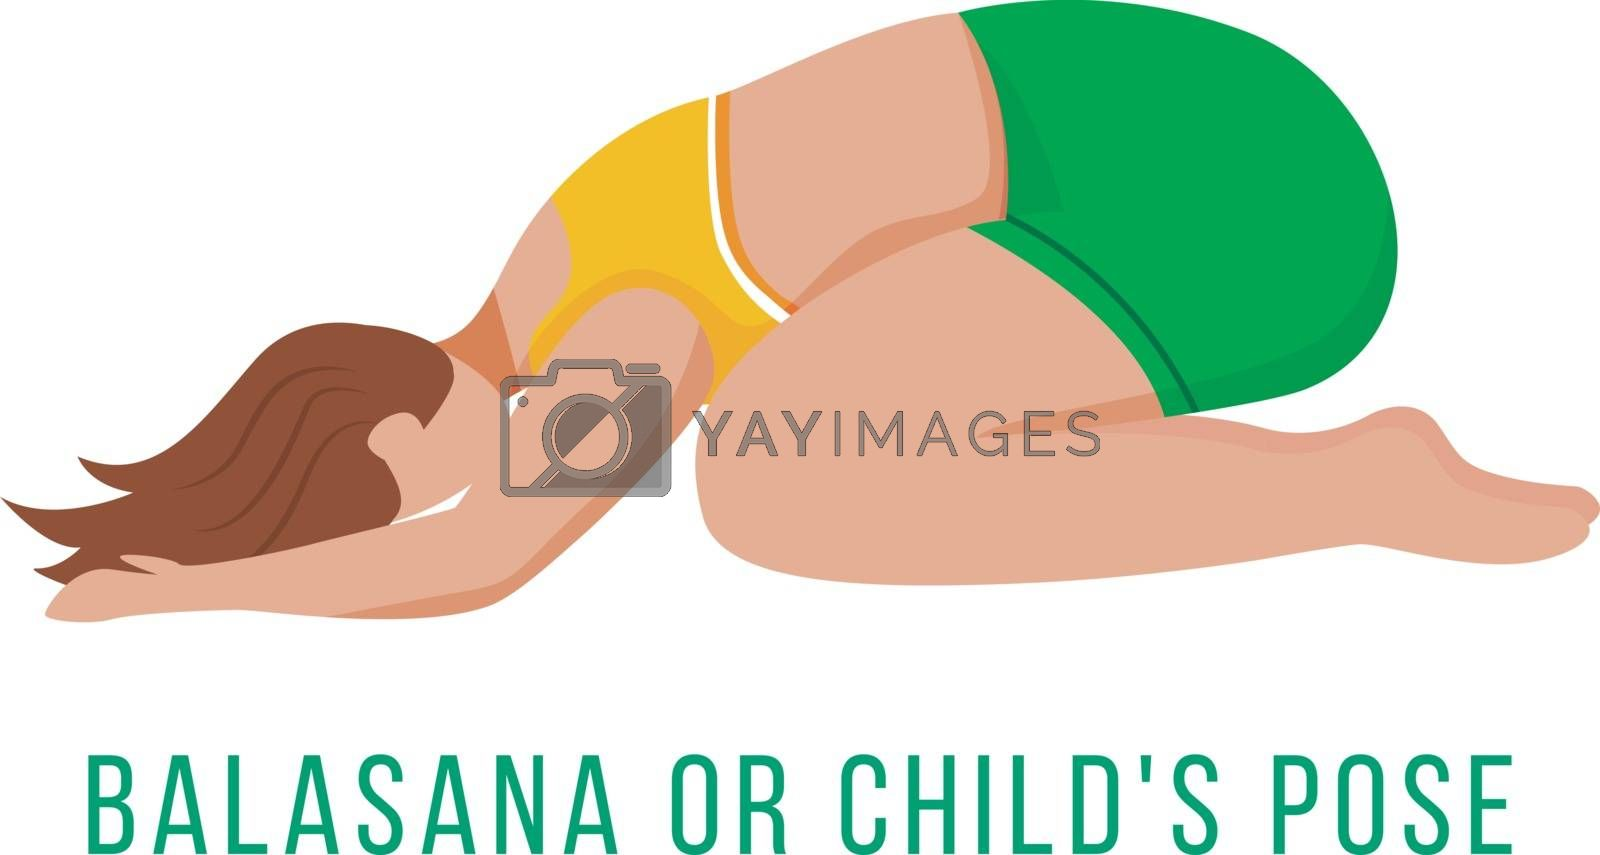 Balasana flat vector illustration. Child's pose. Caucausian woman performing yoga posture in green and yellow sportswear. Workout. Physical exercise. Isolated cartoon character on white background